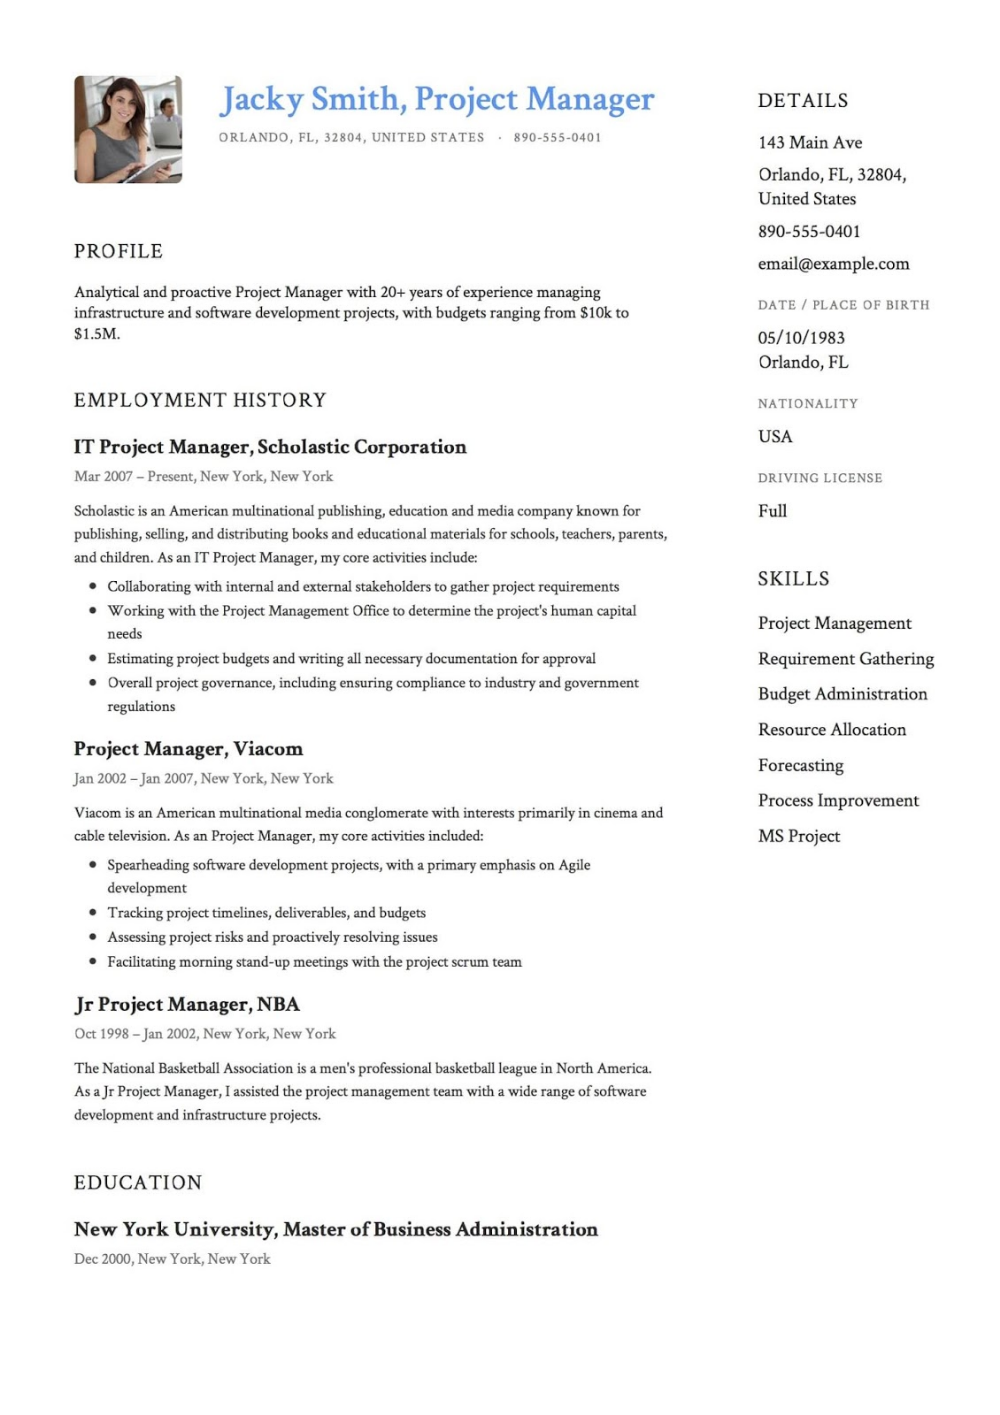 Pin on Resume Templates 2019